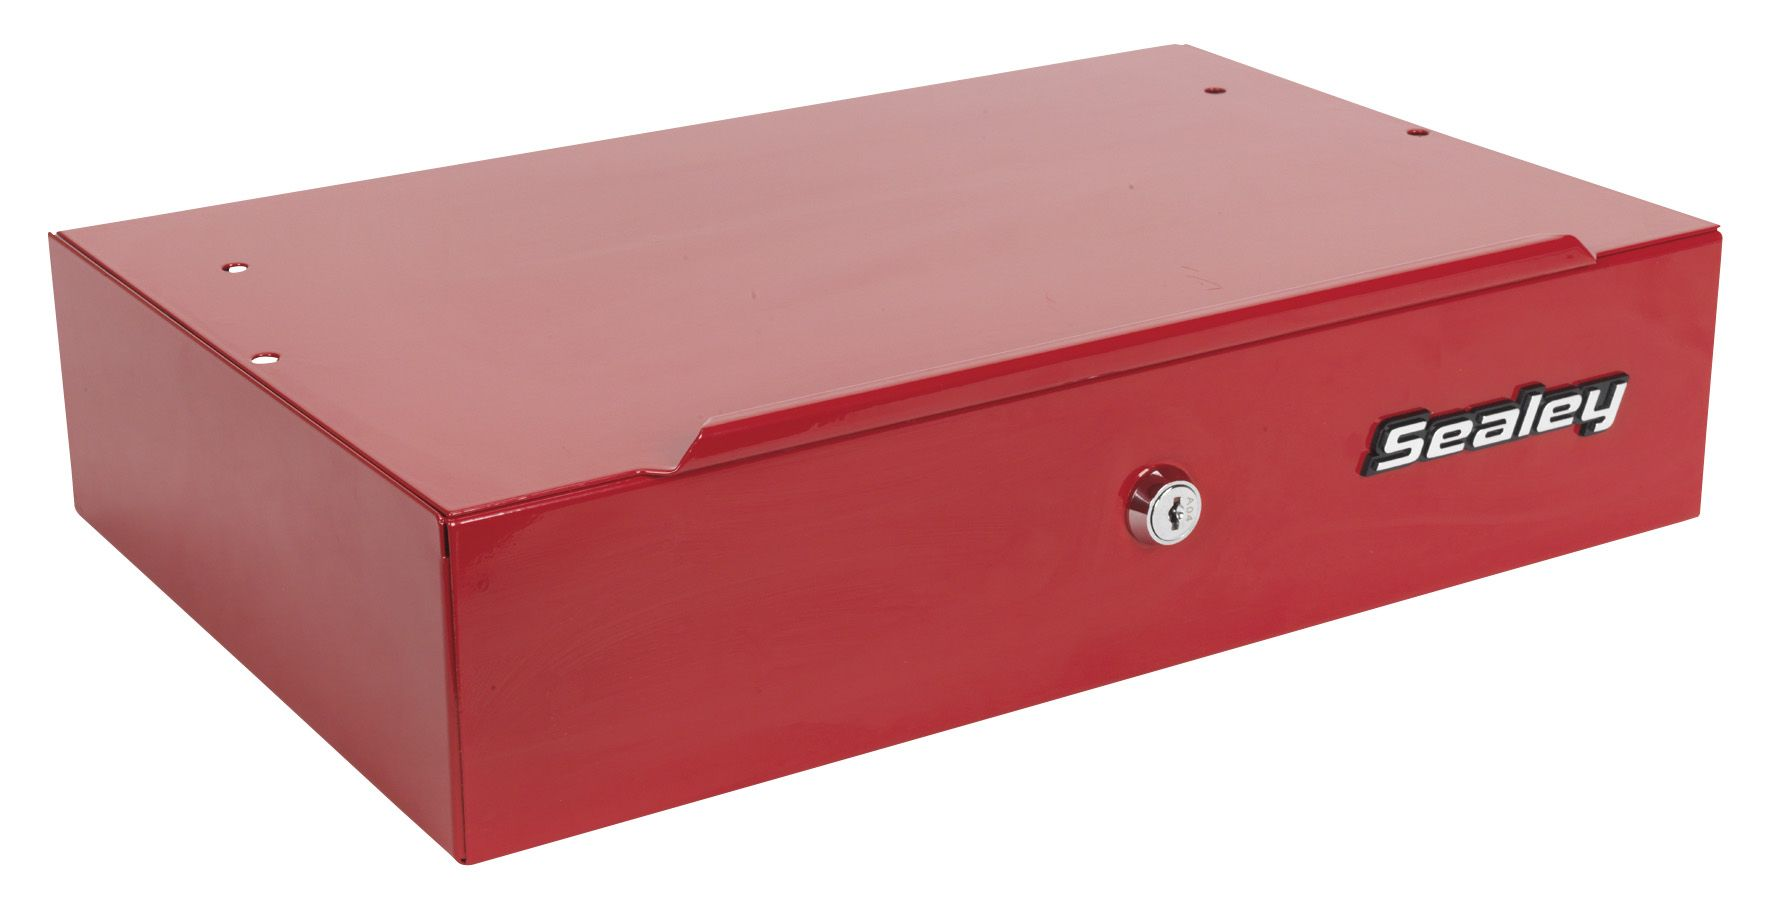 Sealey Side Cabinet for Long Handle Tools - Red